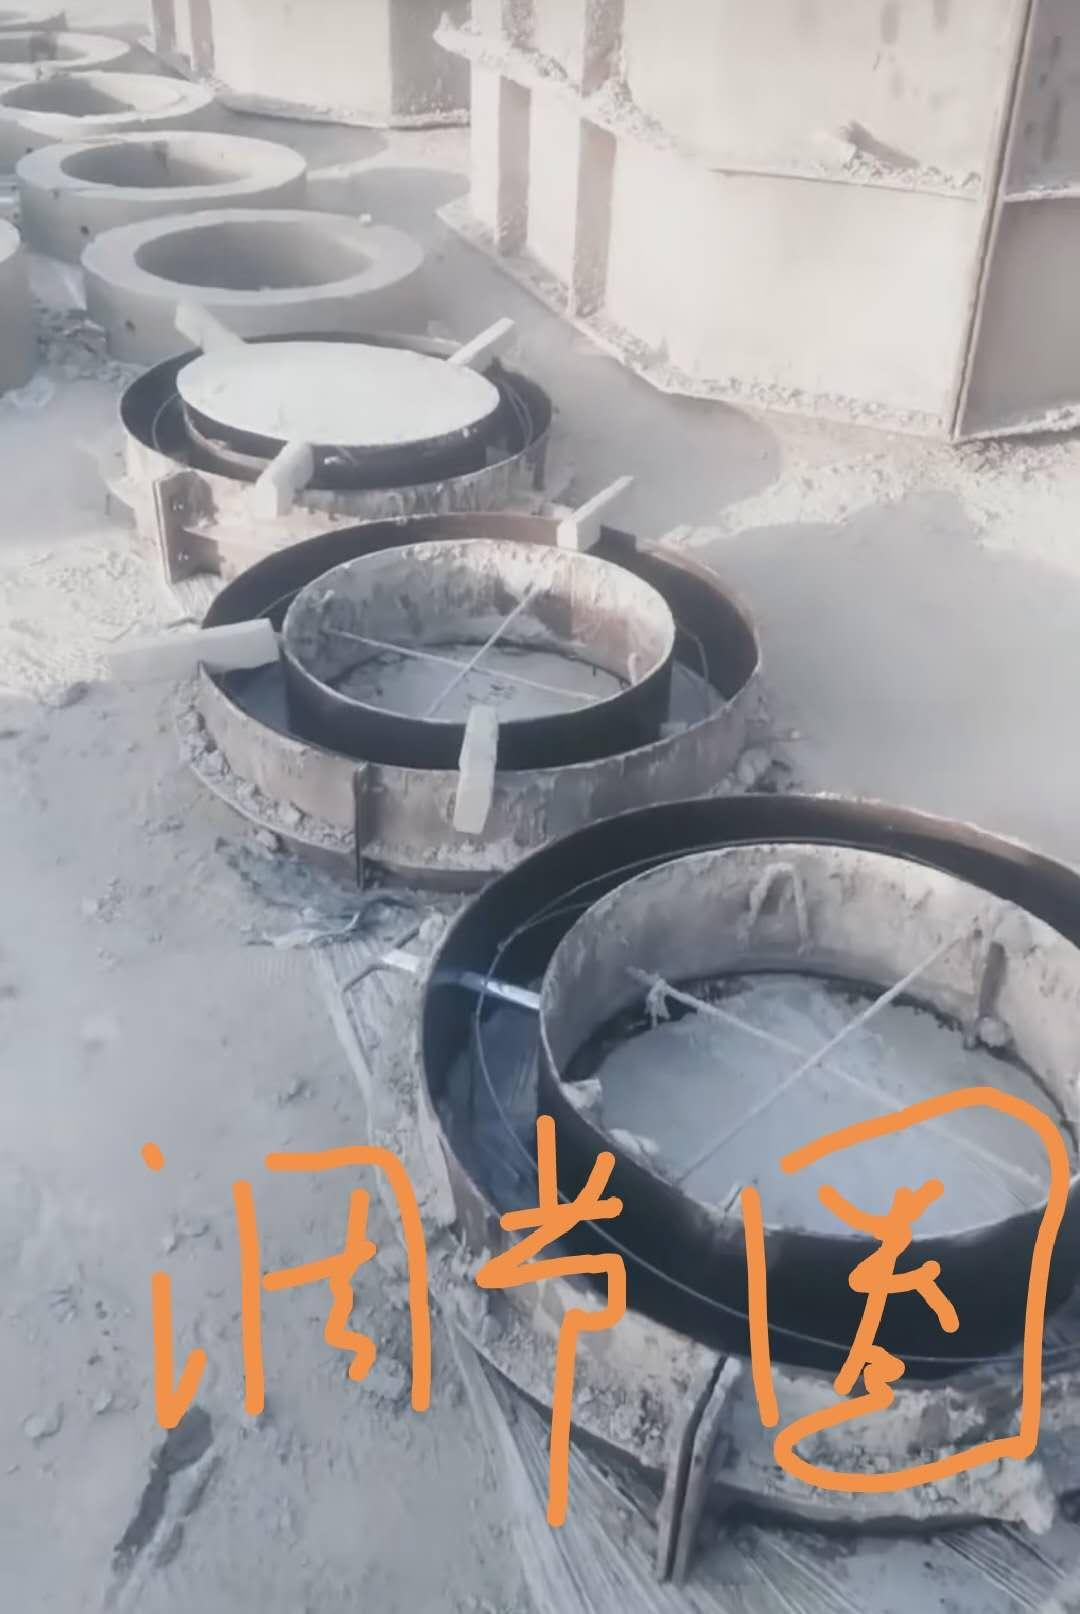 manhole cover for inspection well 4